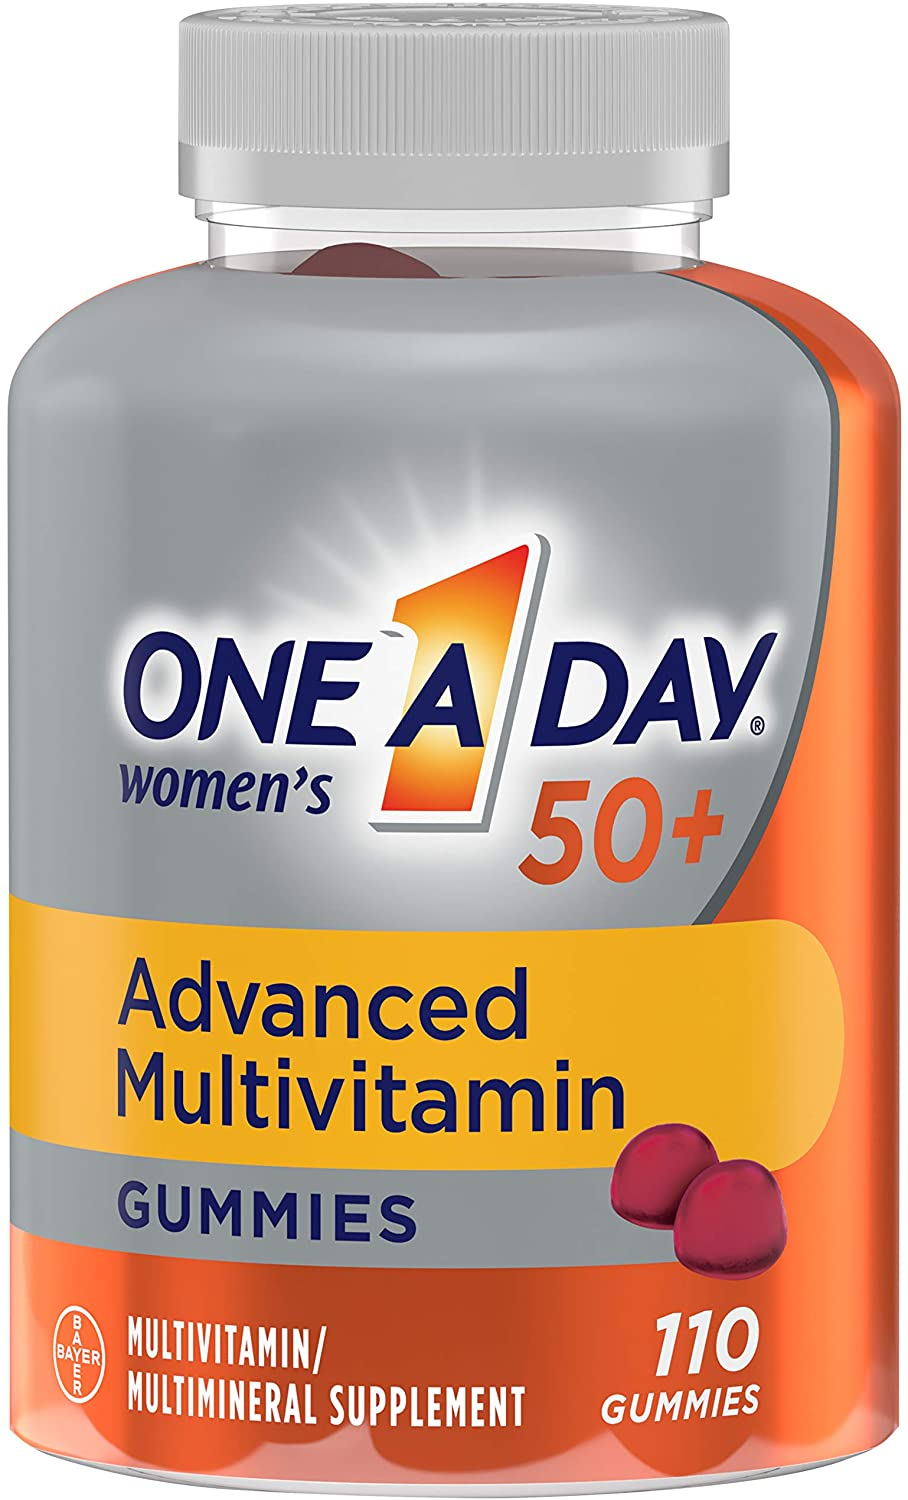 ONE A DAY Women's 50+Gummies Advanced Multivitamin with Brainsupport,super8 Bvitamincomplex,110count, Strawberry, 110 Count